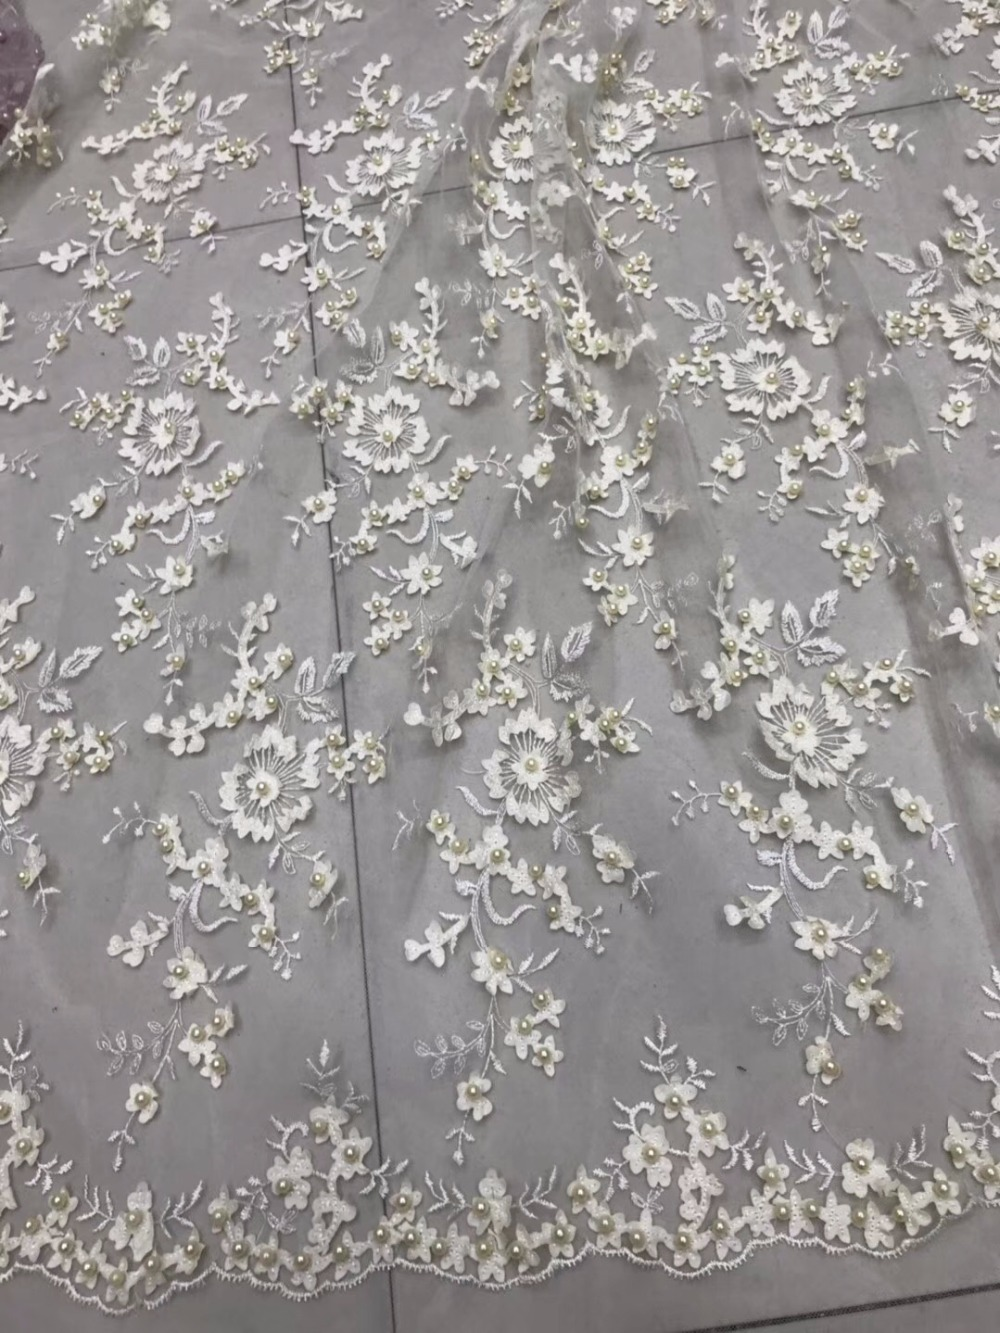 2018 African French Beaded Lace Fabric New beige Color Flower Lace Fabric With beads Embroidery Tulle Net Lace Fabric2018 African French Beaded Lace Fabric New beige Color Flower Lace Fabric With beads Embroidery Tulle Net Lace Fabric